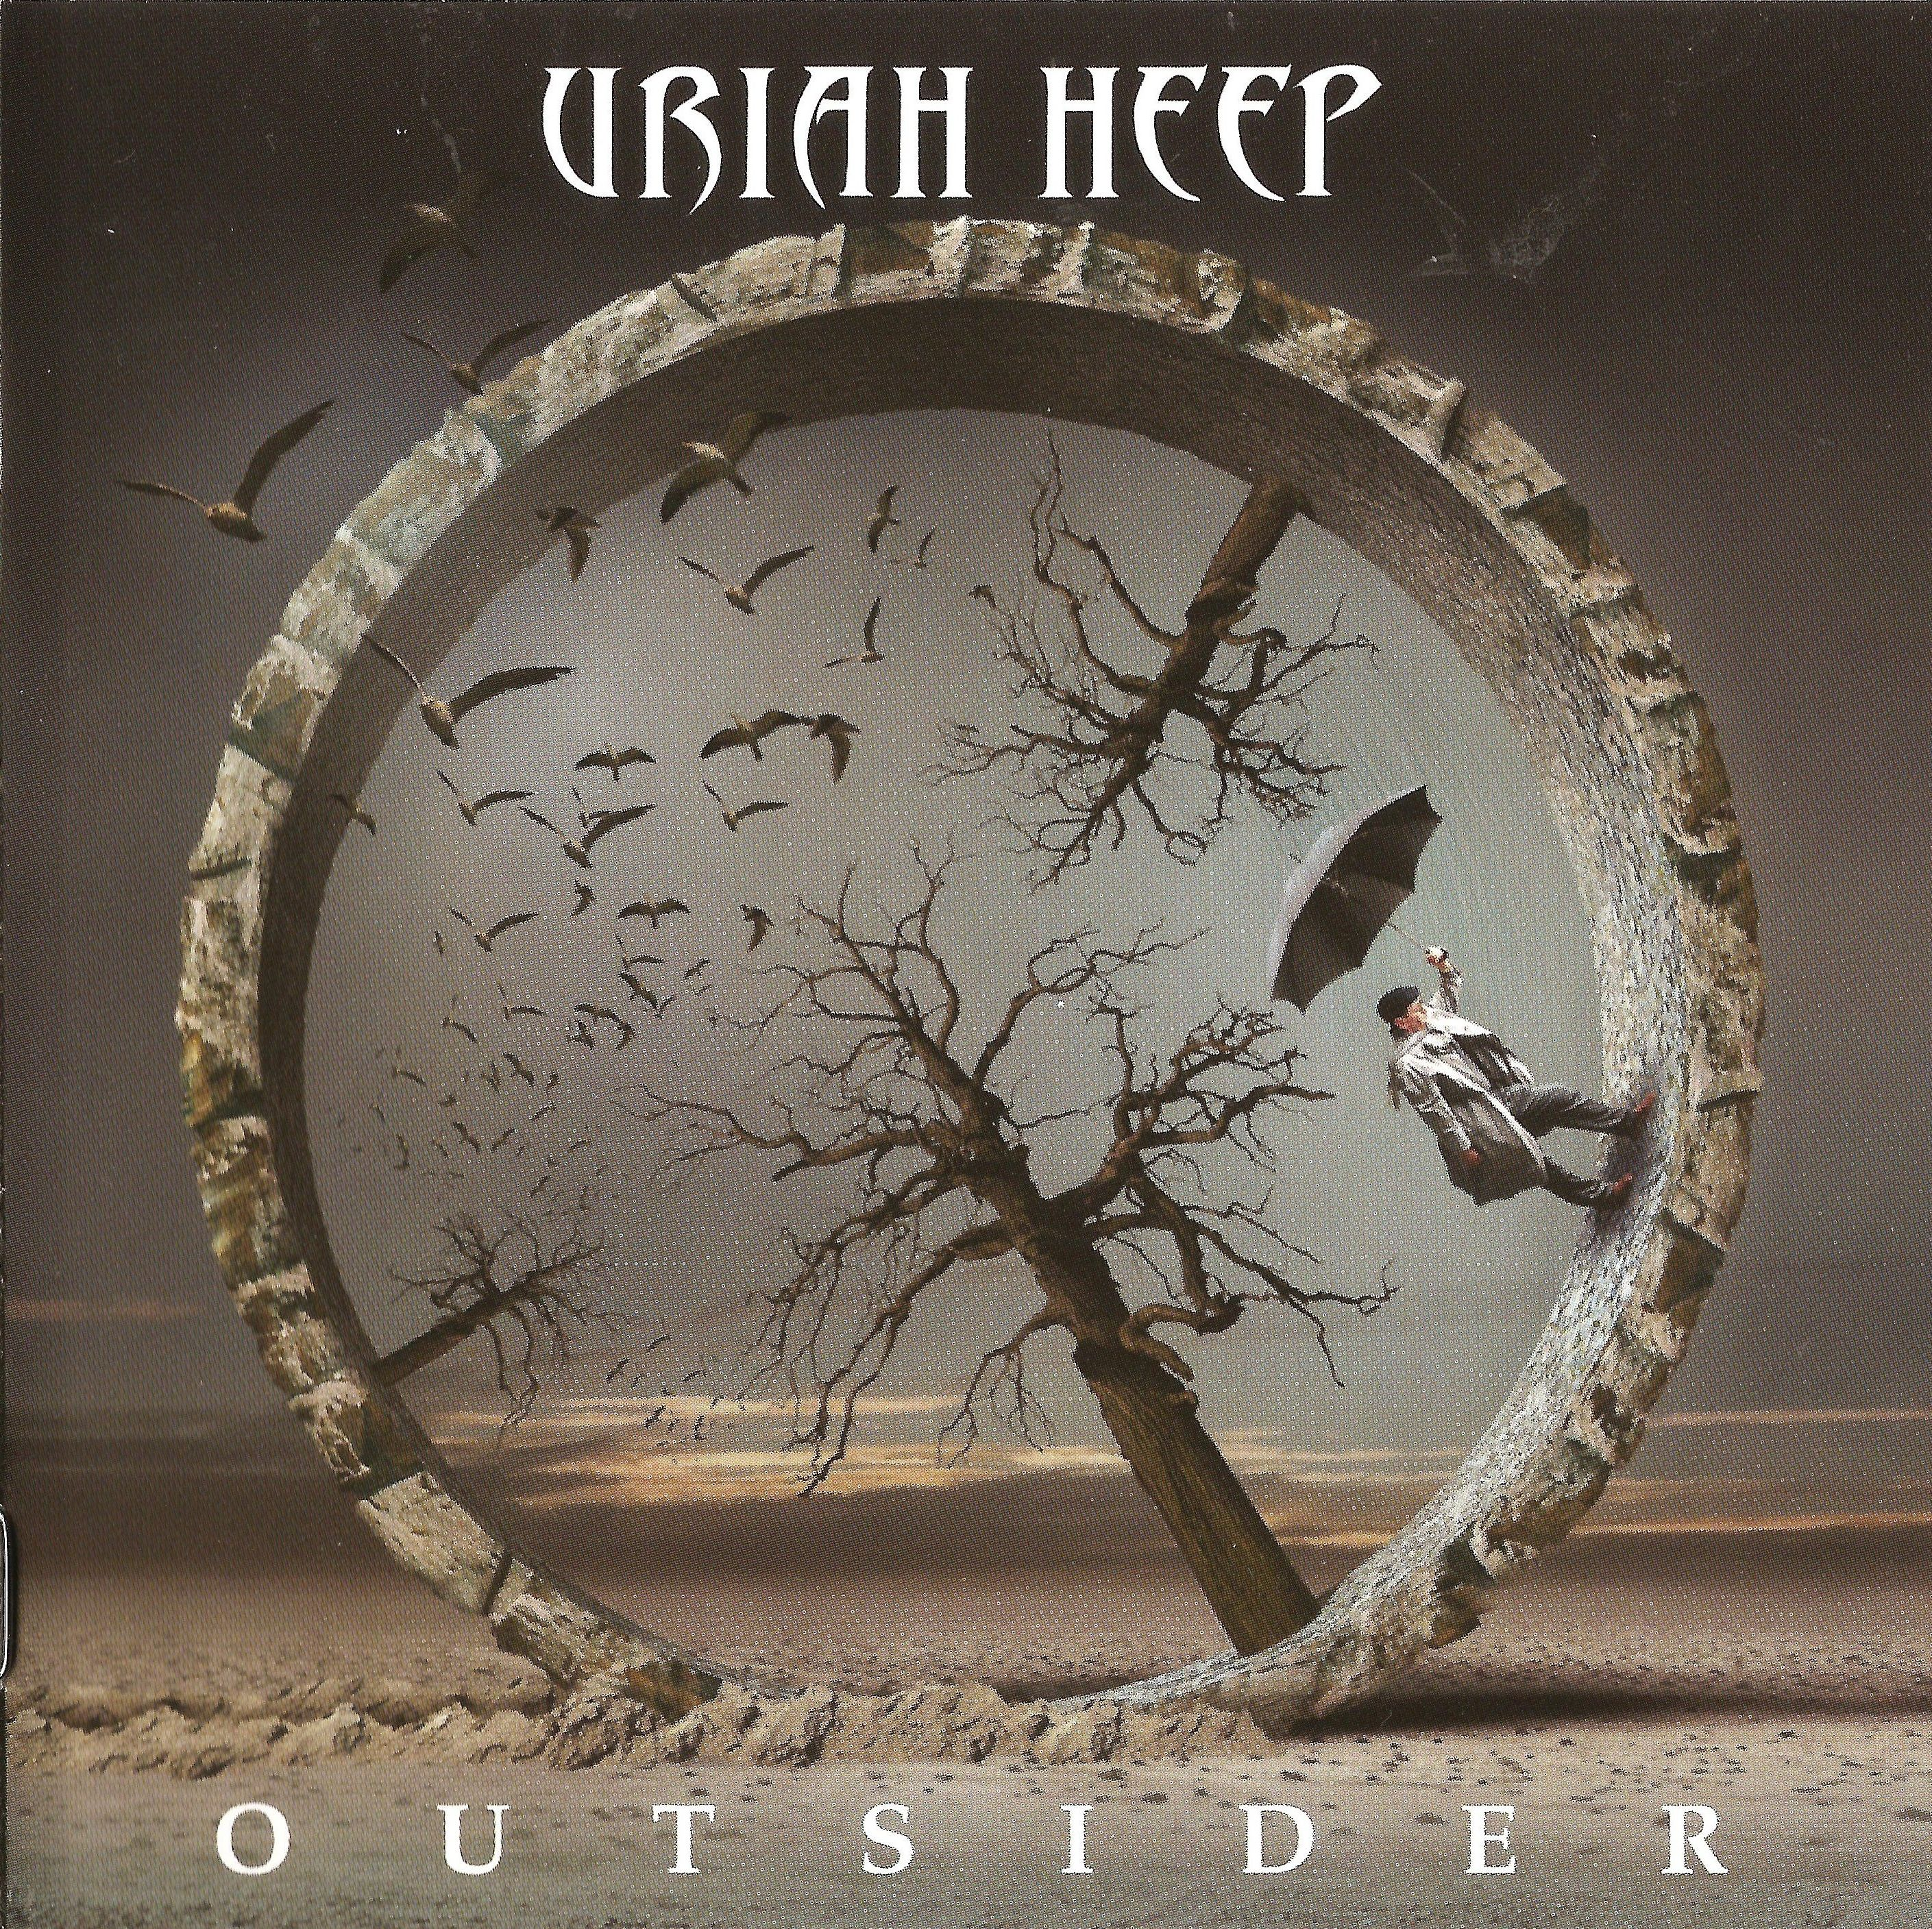 Uriah Heep - Outsider album cover